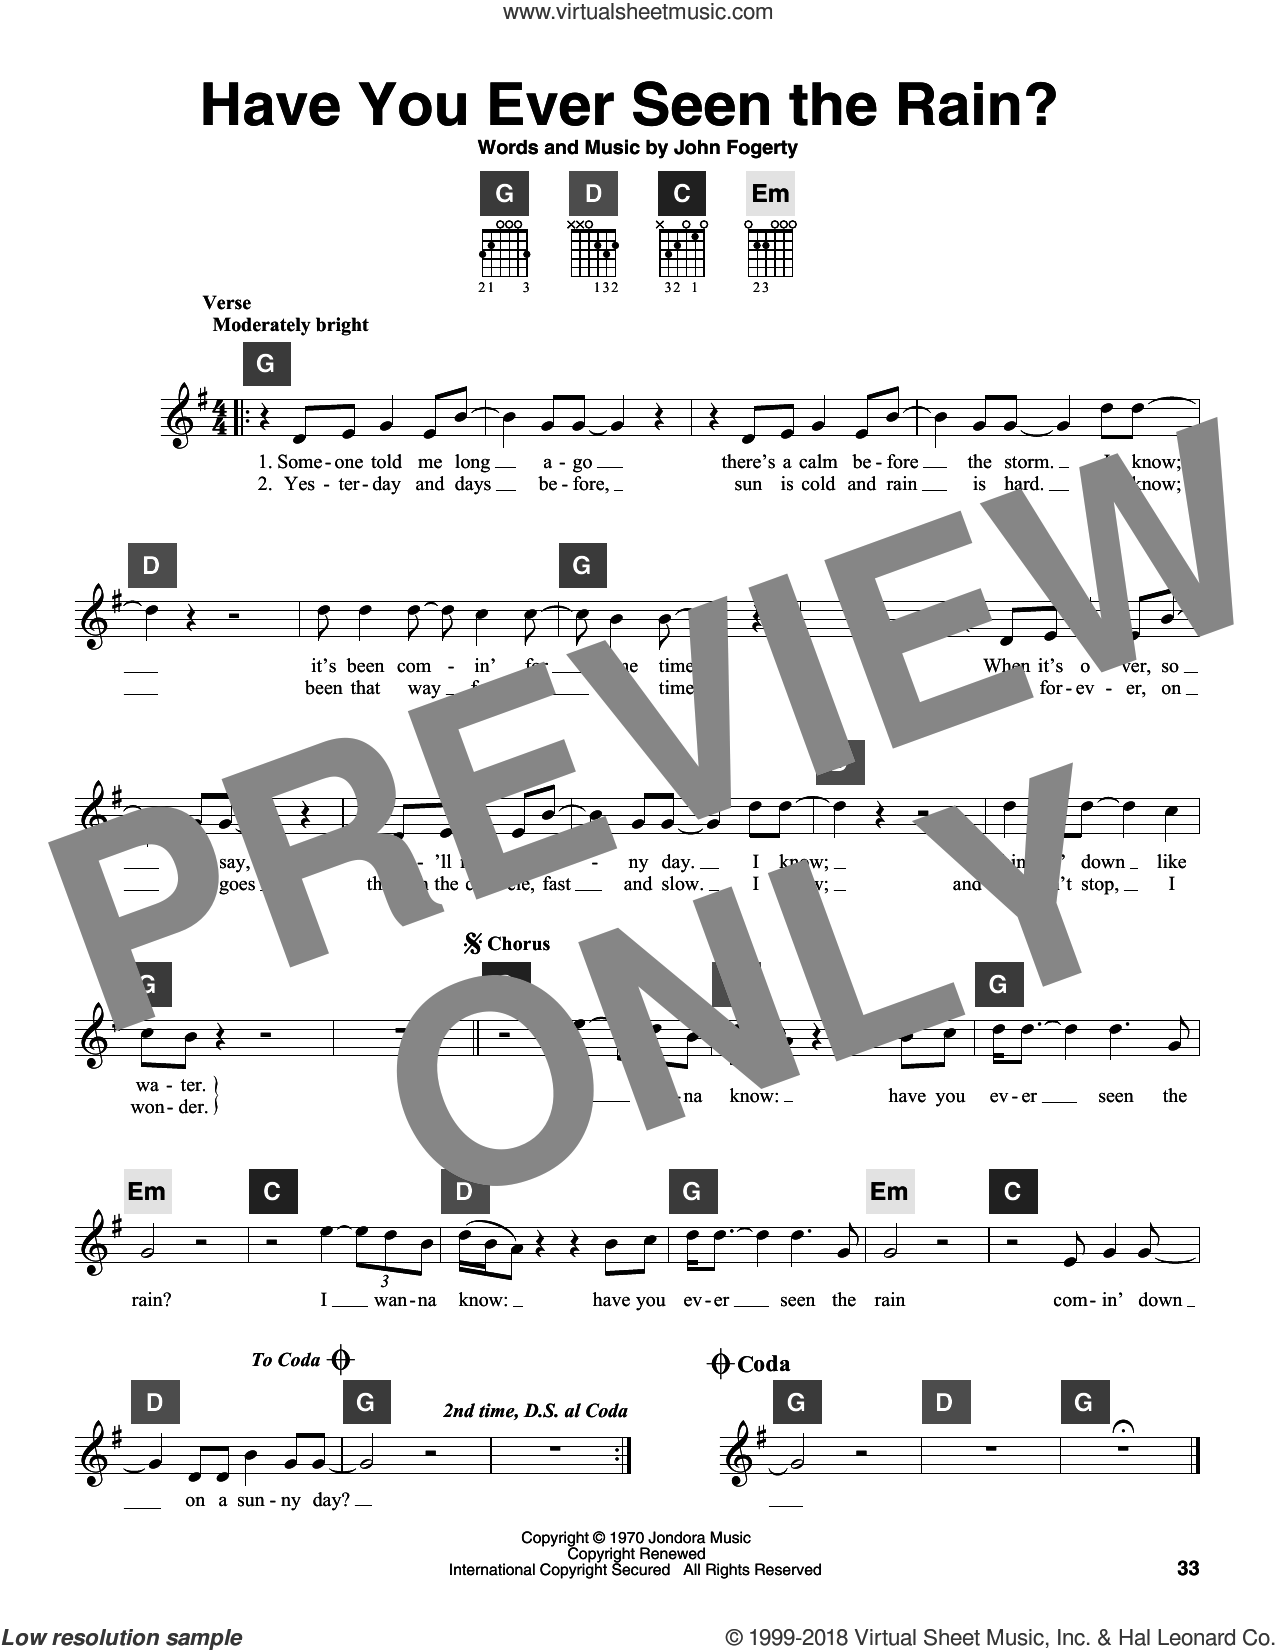 Have You Ever Seen The Rain? sheet music for guitar solo (ChordBuddy system) by John Fogerty